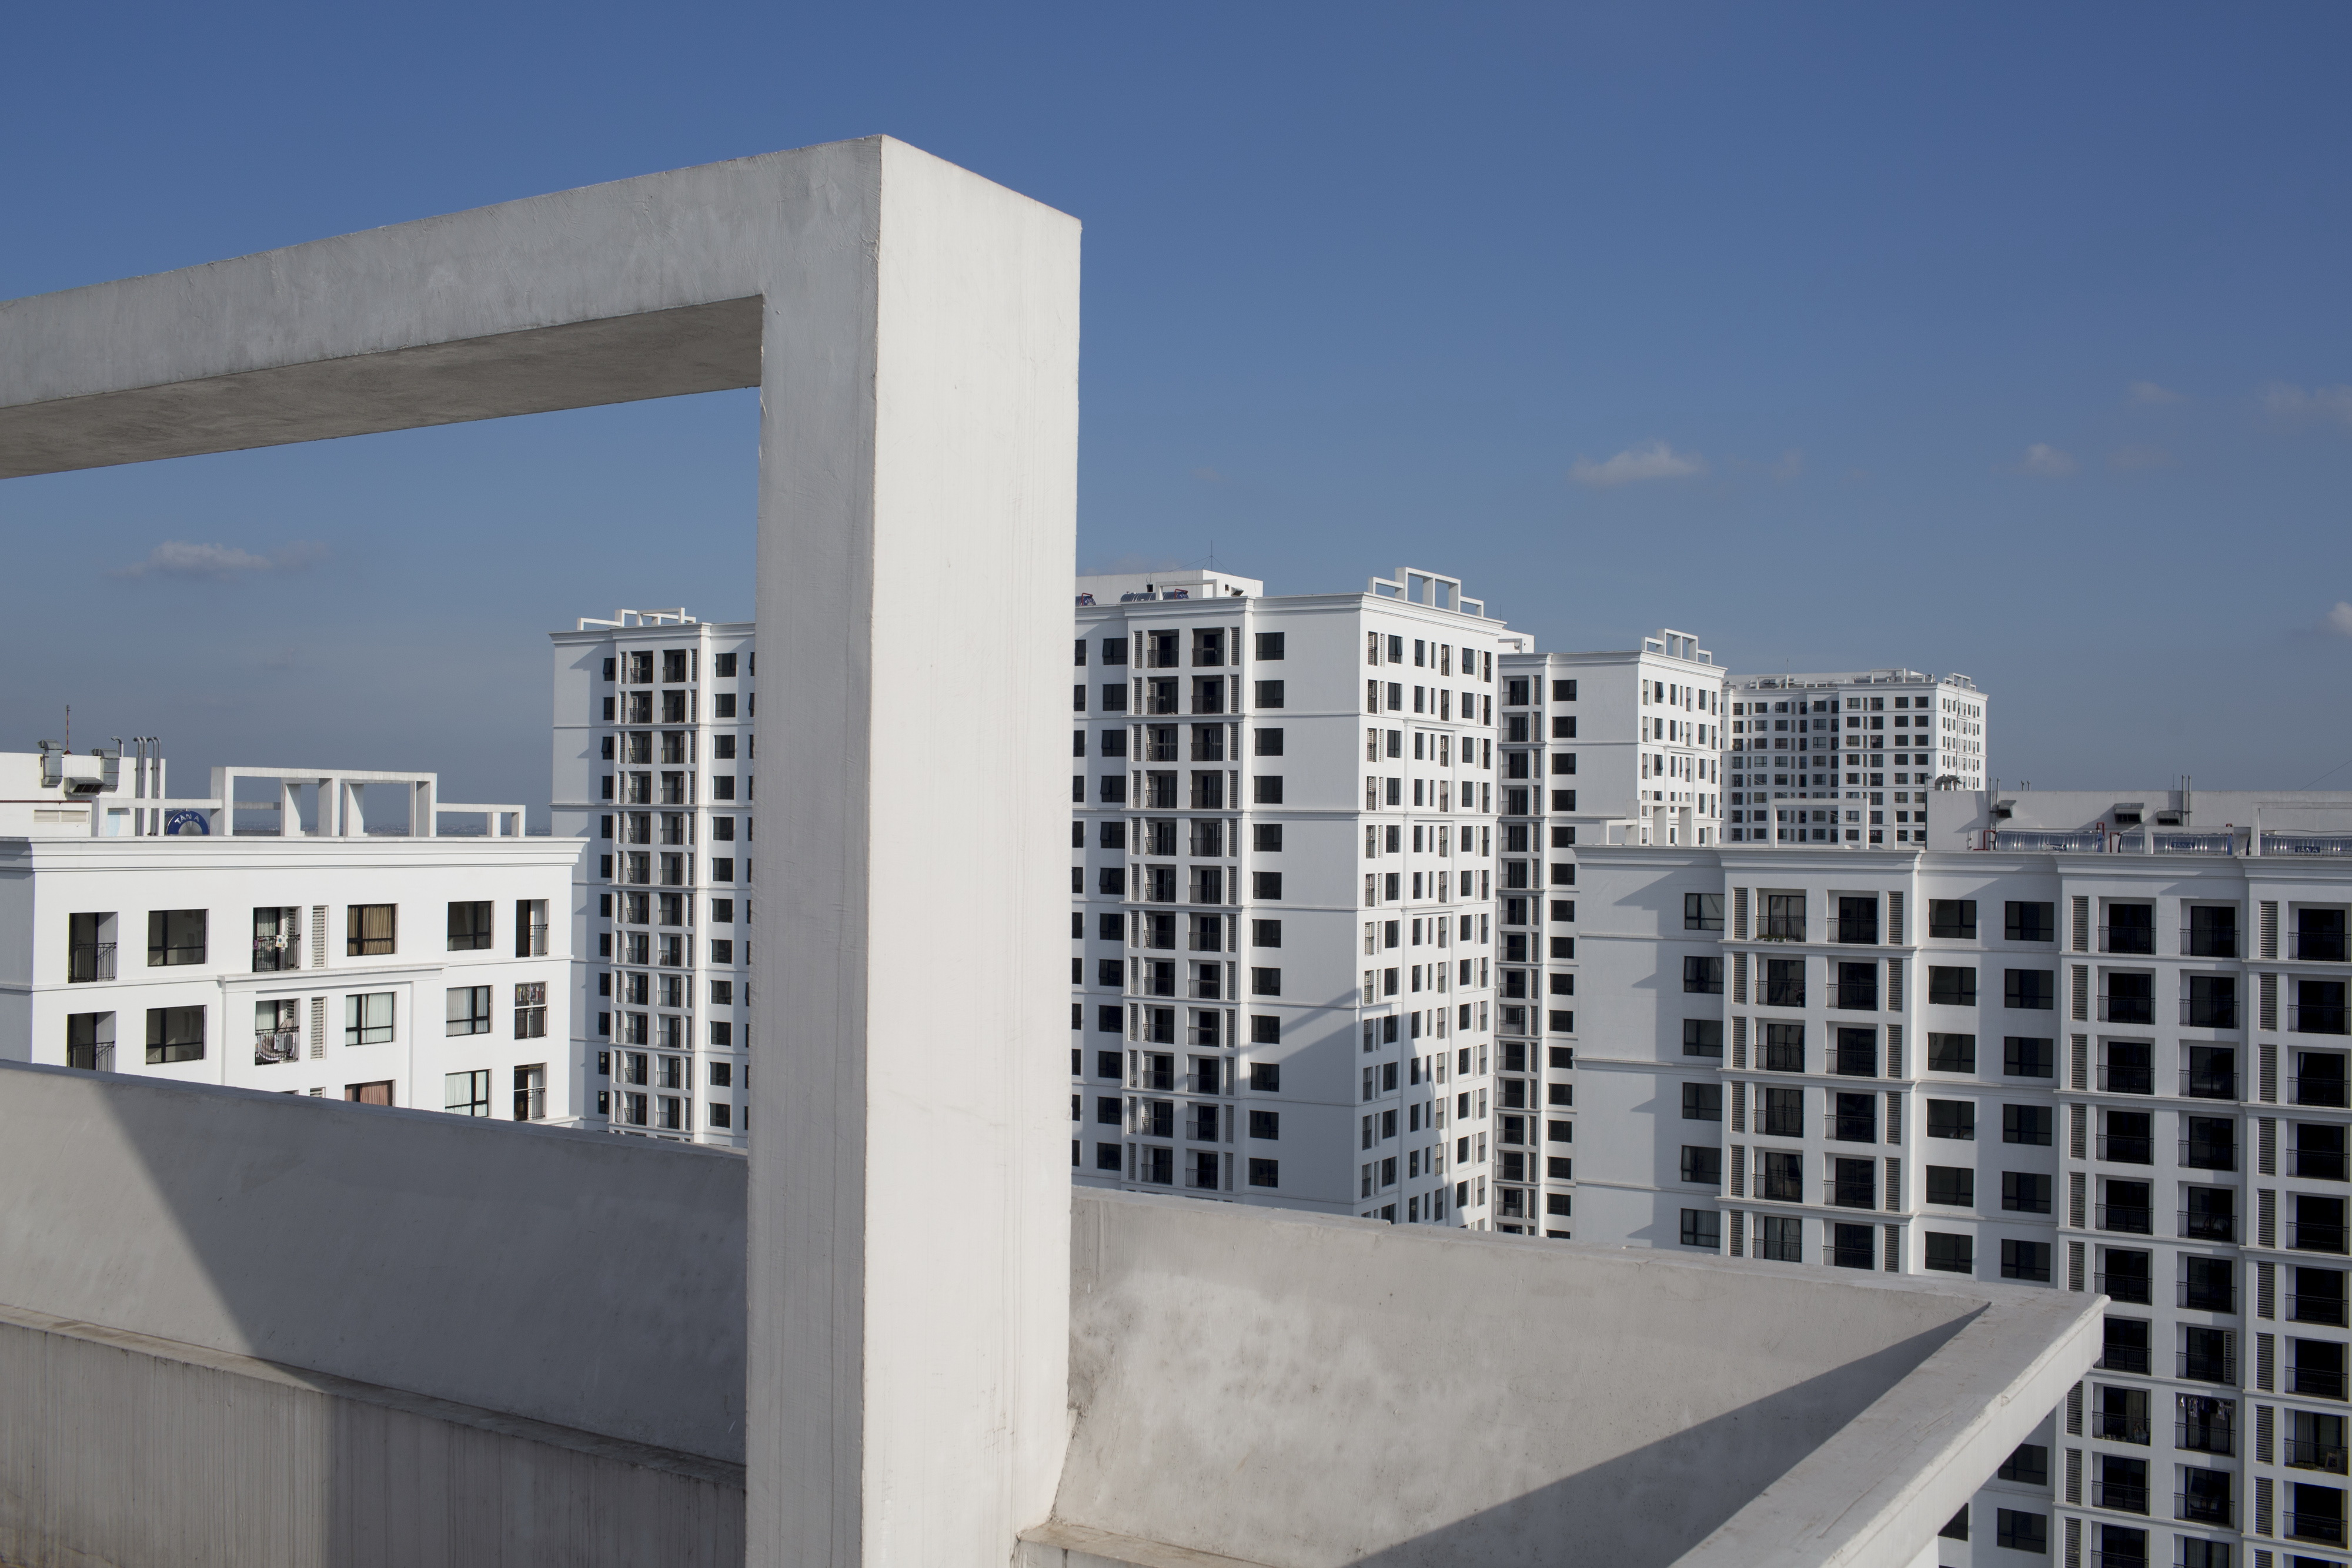 City Apartment Building 2016 Set To Be Another Strong Year For Vietnam Housing